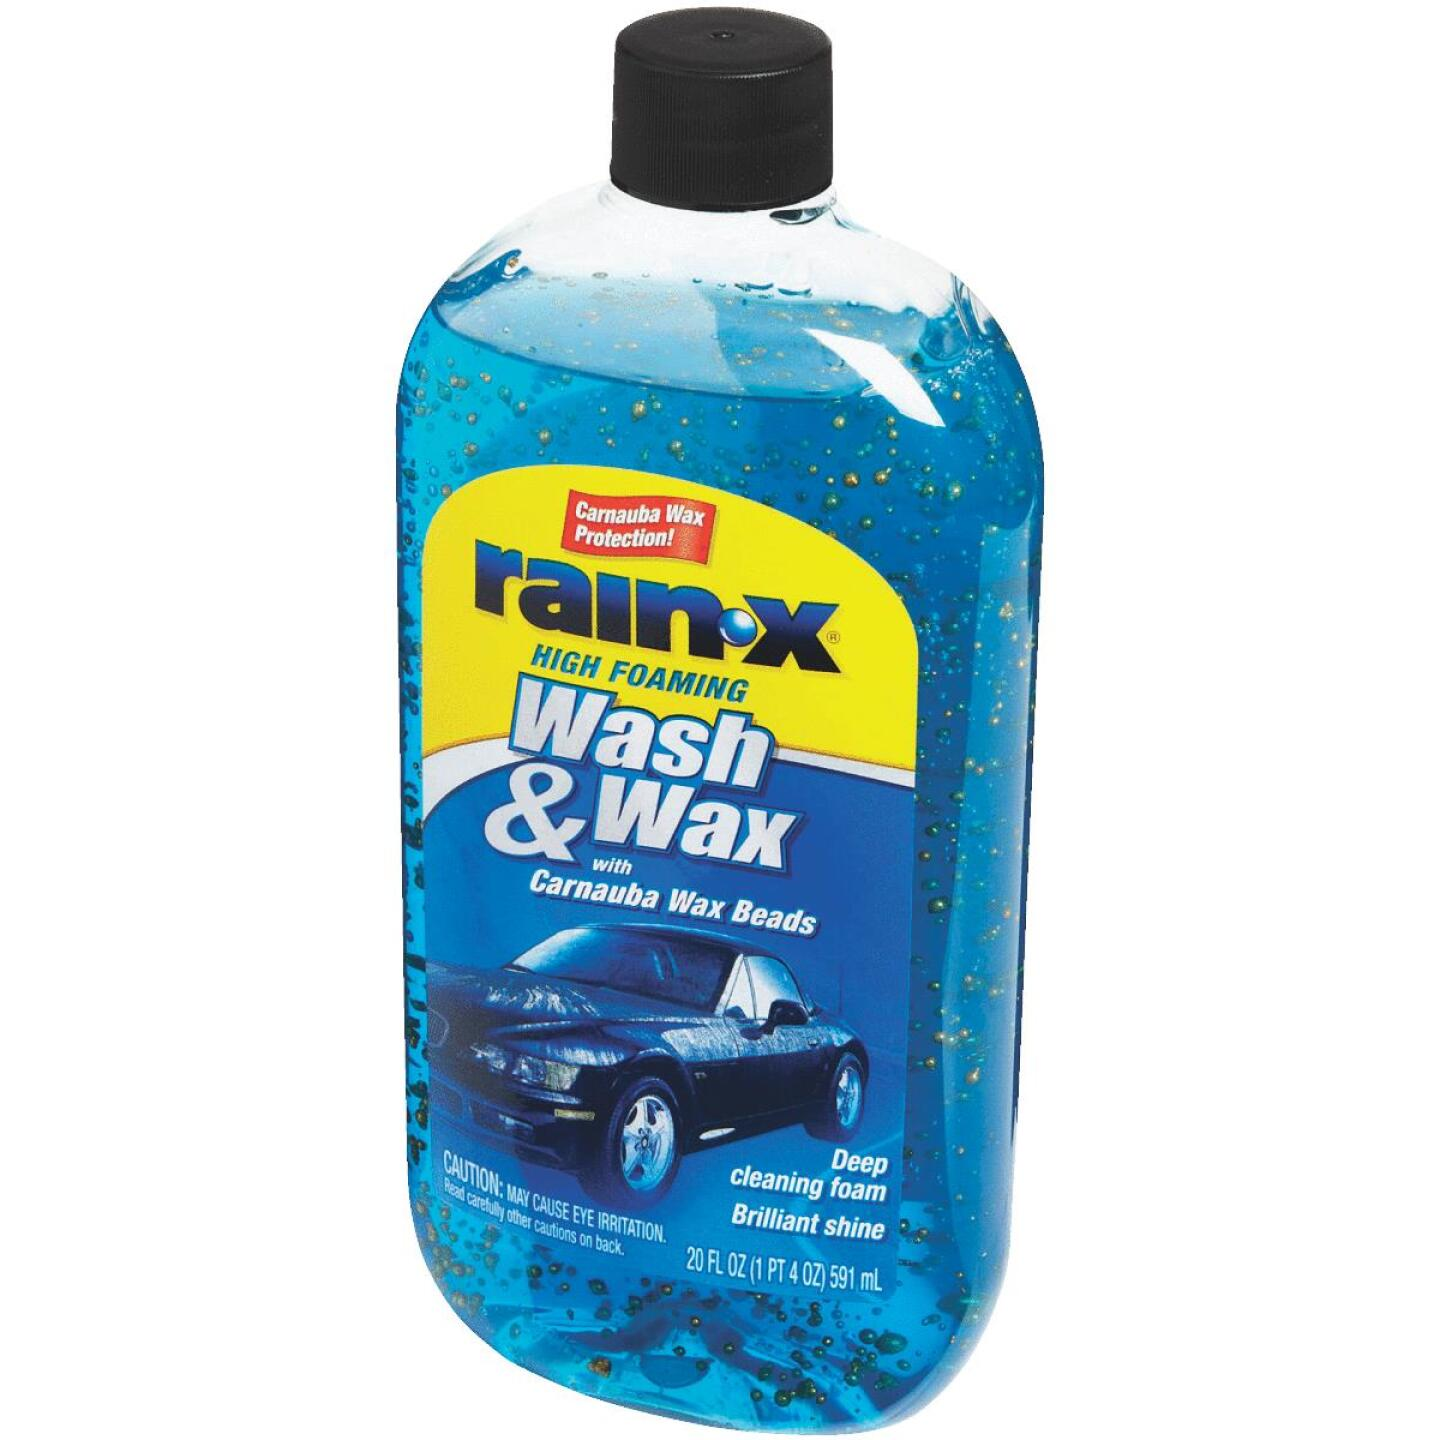 RAIN-X 20 Oz. Liquid High Foaming Car Wash & Wax w/Carnauba Wax Image 4